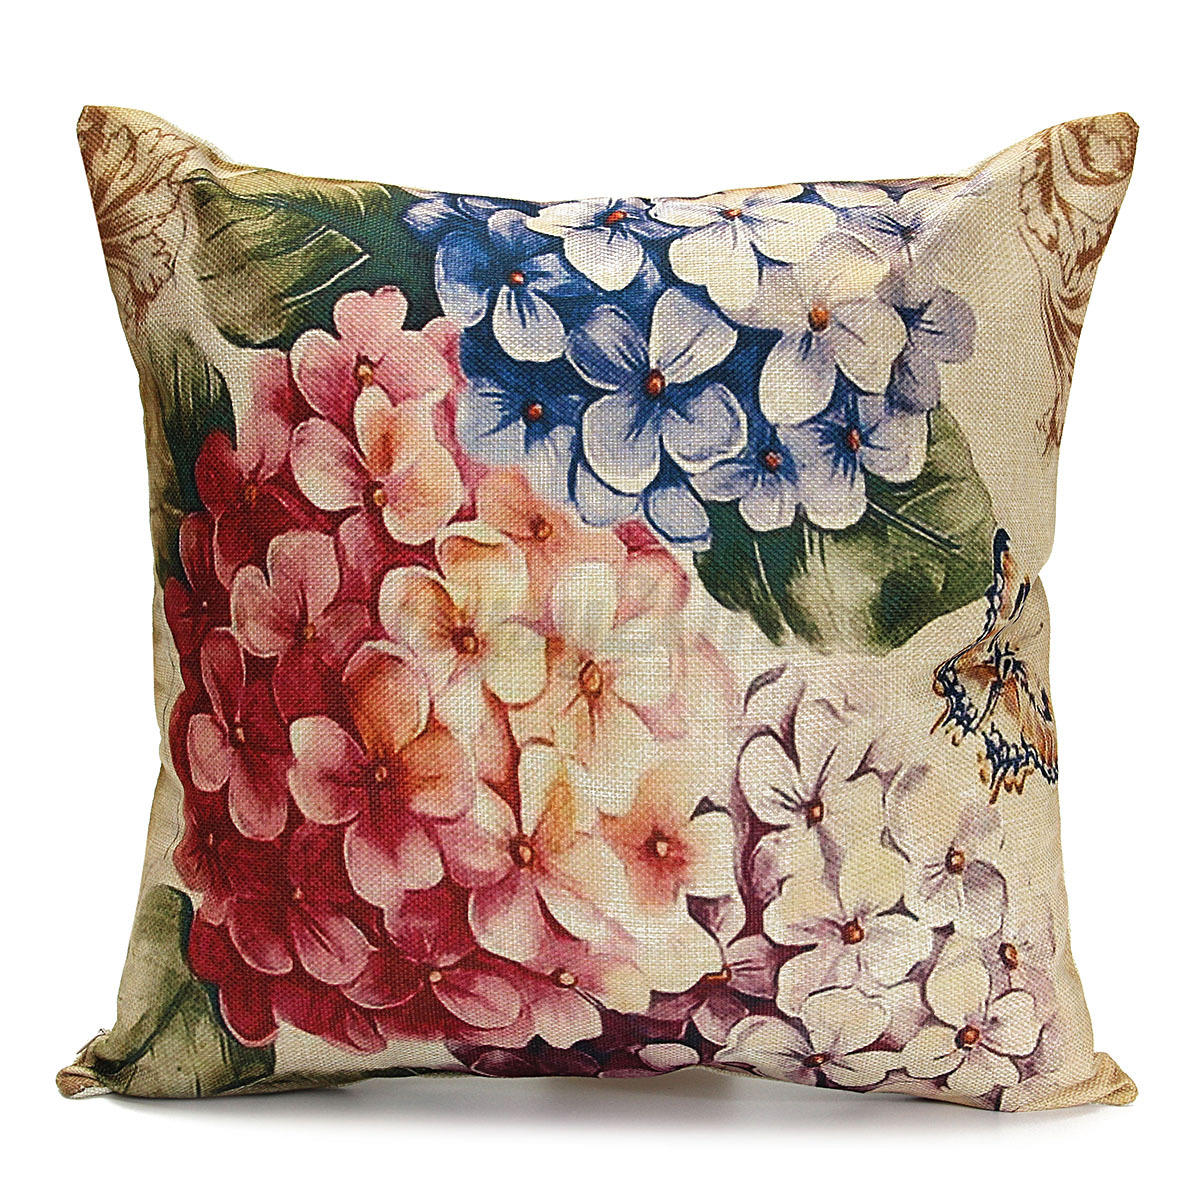 Decorative Linen Pillows : Vintage Flower/Vase Pillow Case Decorative Cotton Linen Cushion Cover Home Decor eBay